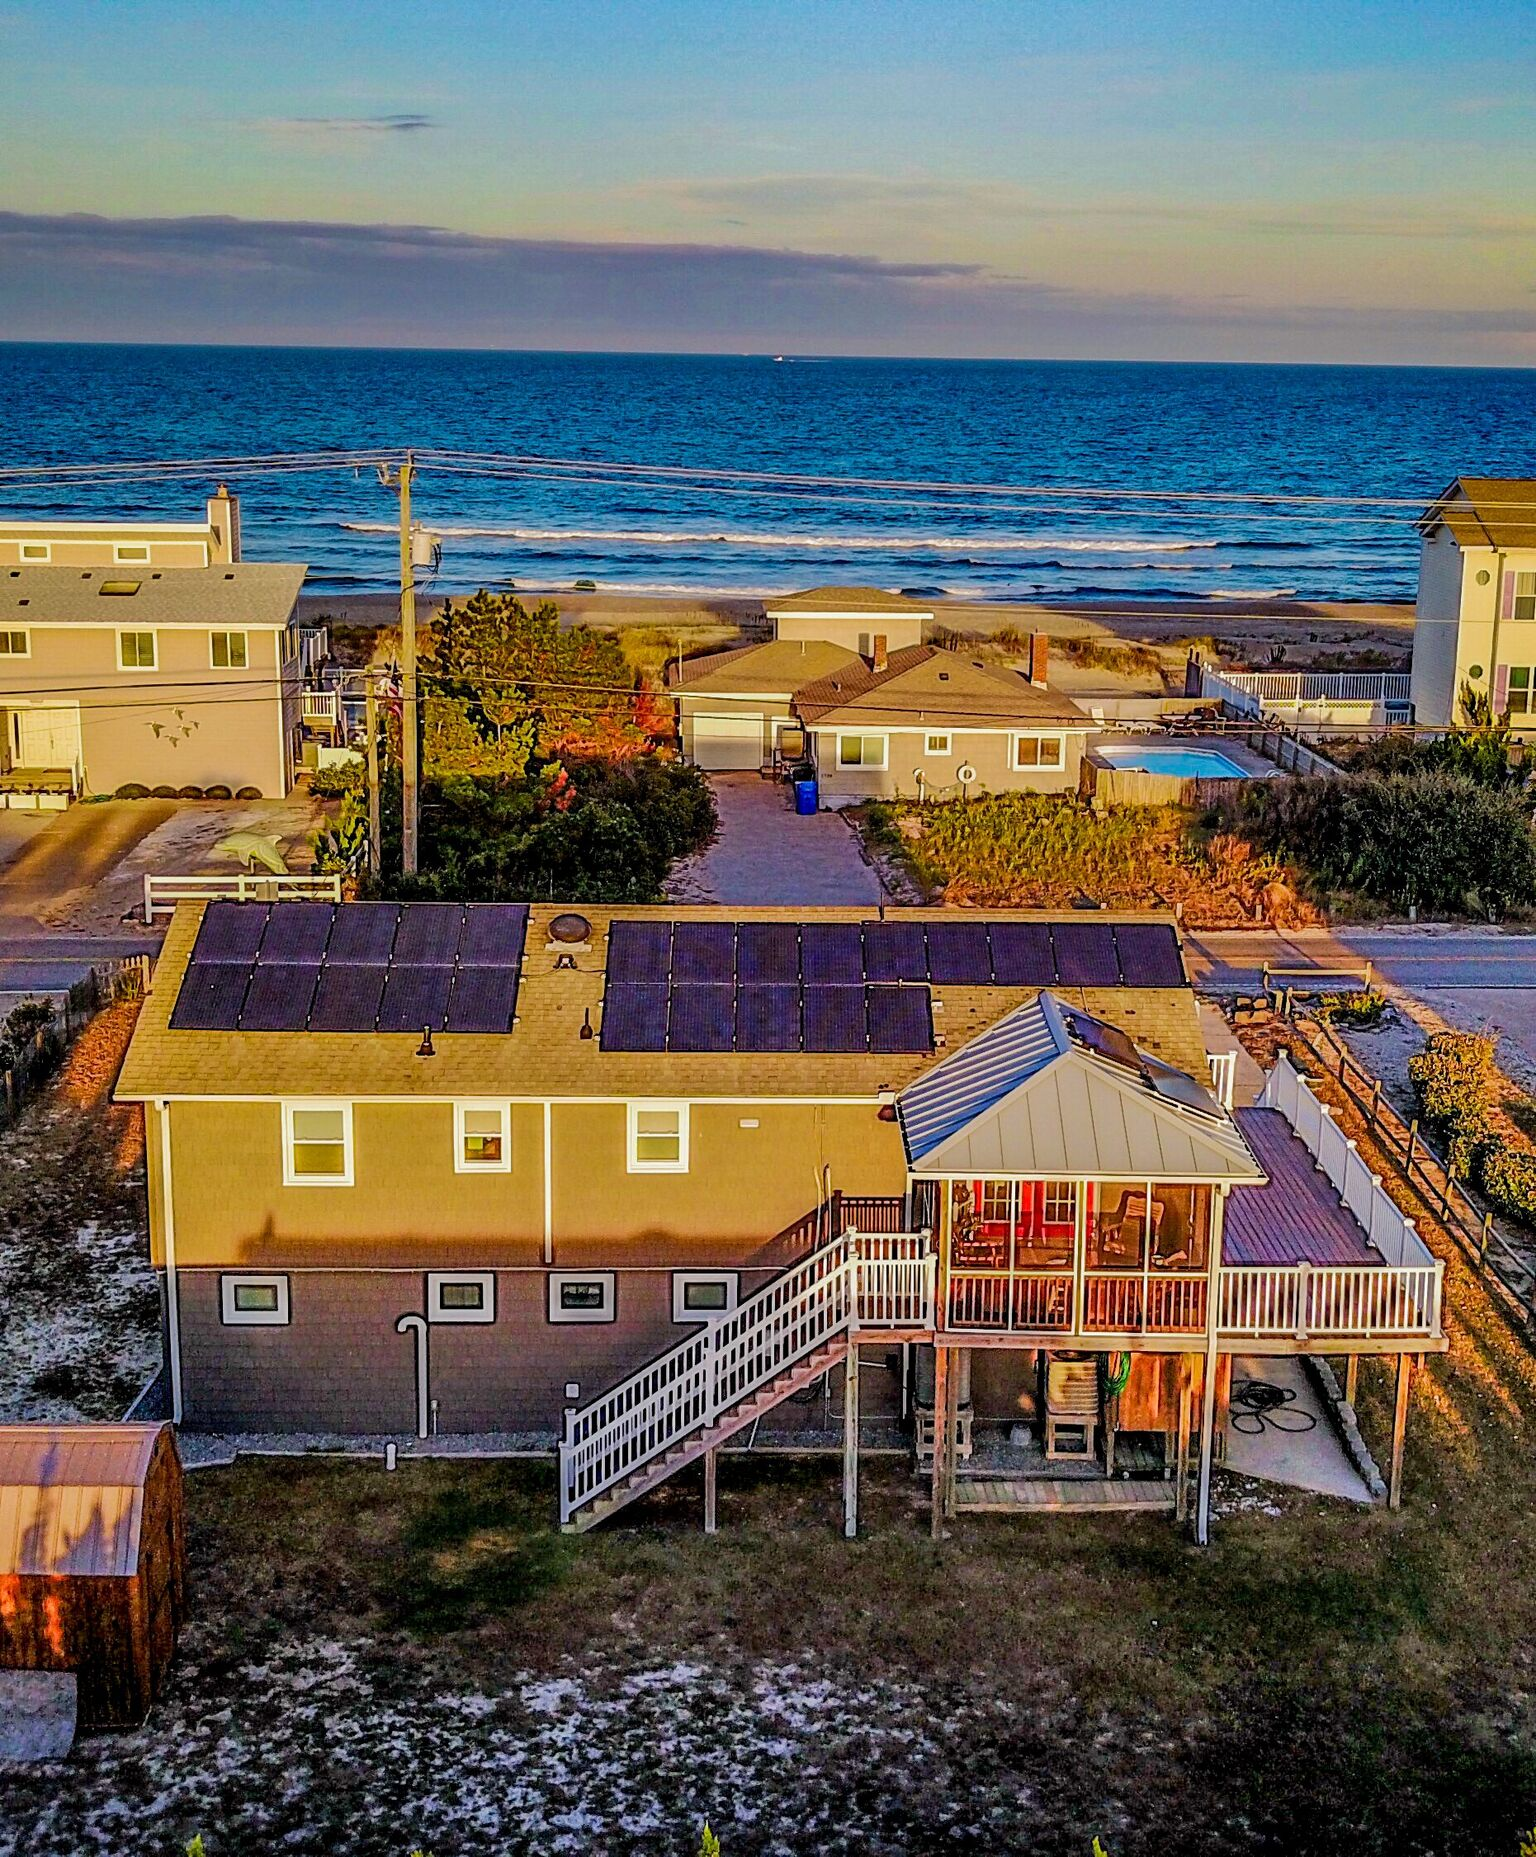 2709 SANDFIDDLER RD - SANDBRIDGE SEMI-OCEANFRONT HOME